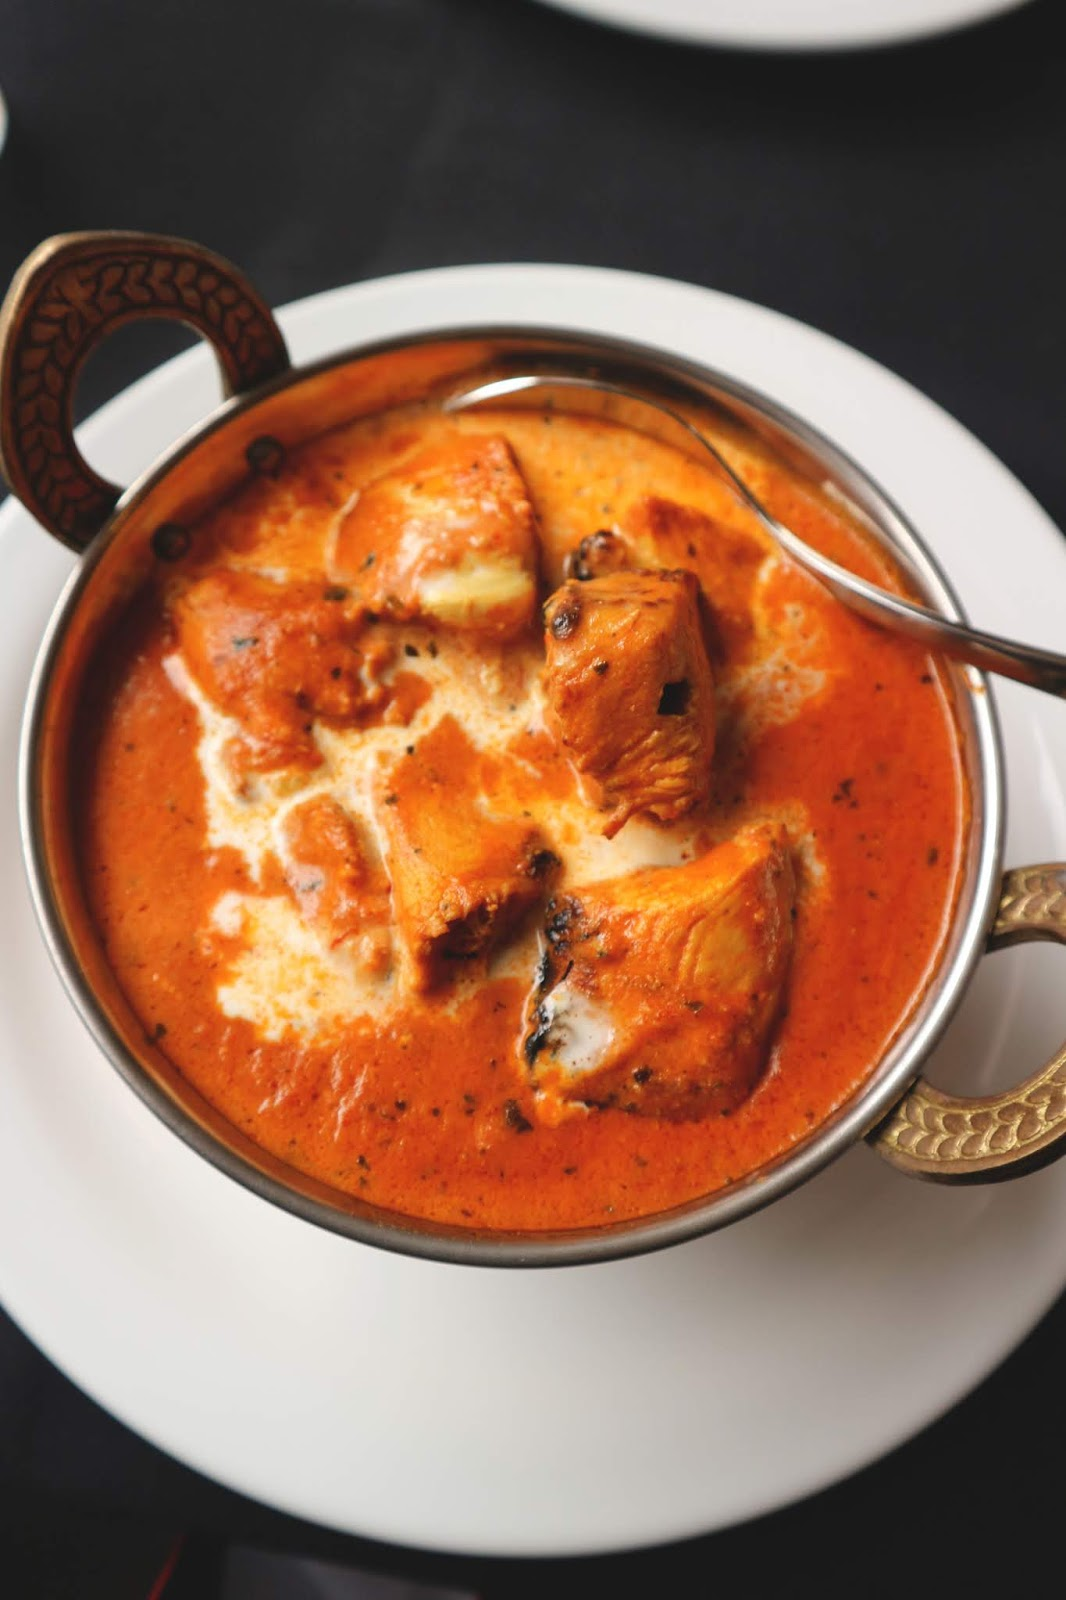 Namaste Kingston - New Indian Restaurant - Butter Chicken